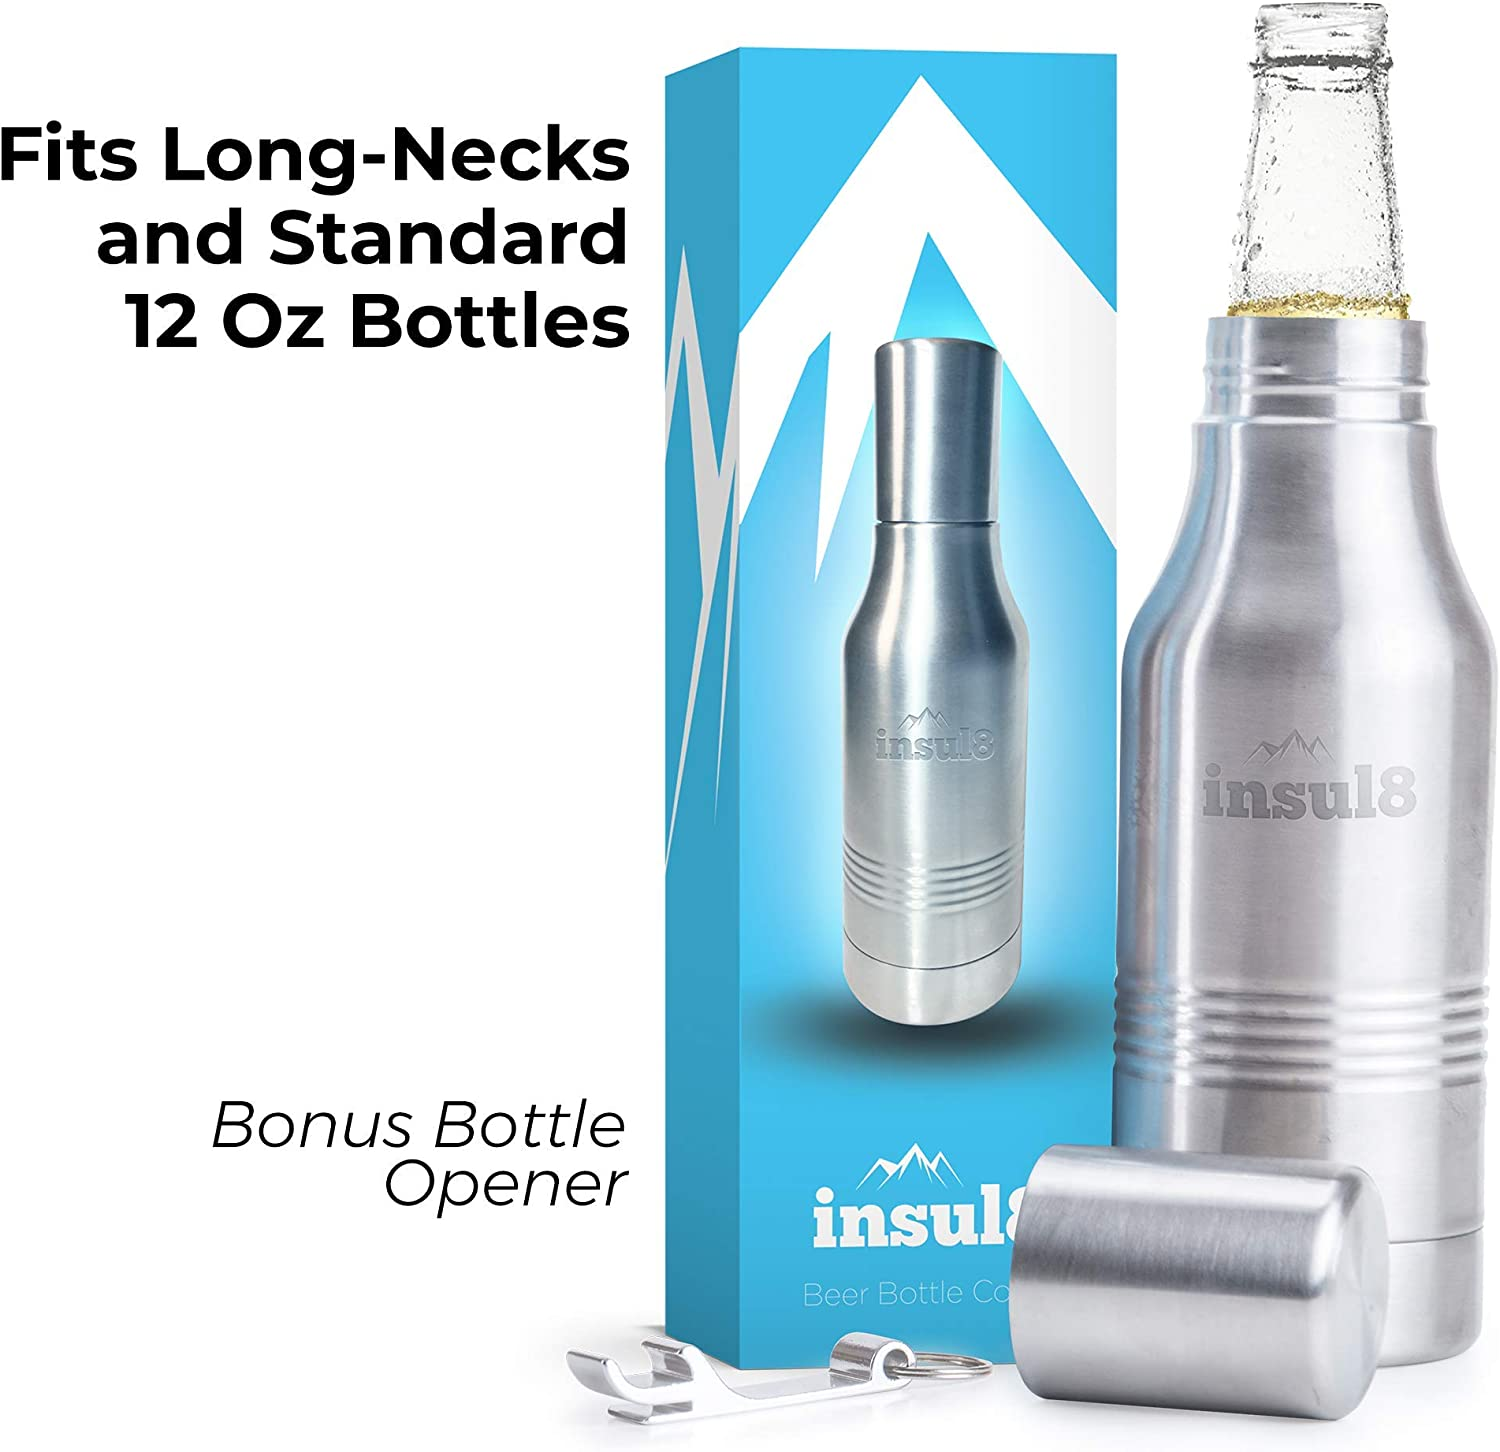 The Original Insul8 Beer Bottle Cooler   Double Wall Insulated Beer Bottle Holder Stainless Steel Fits 12 oz.